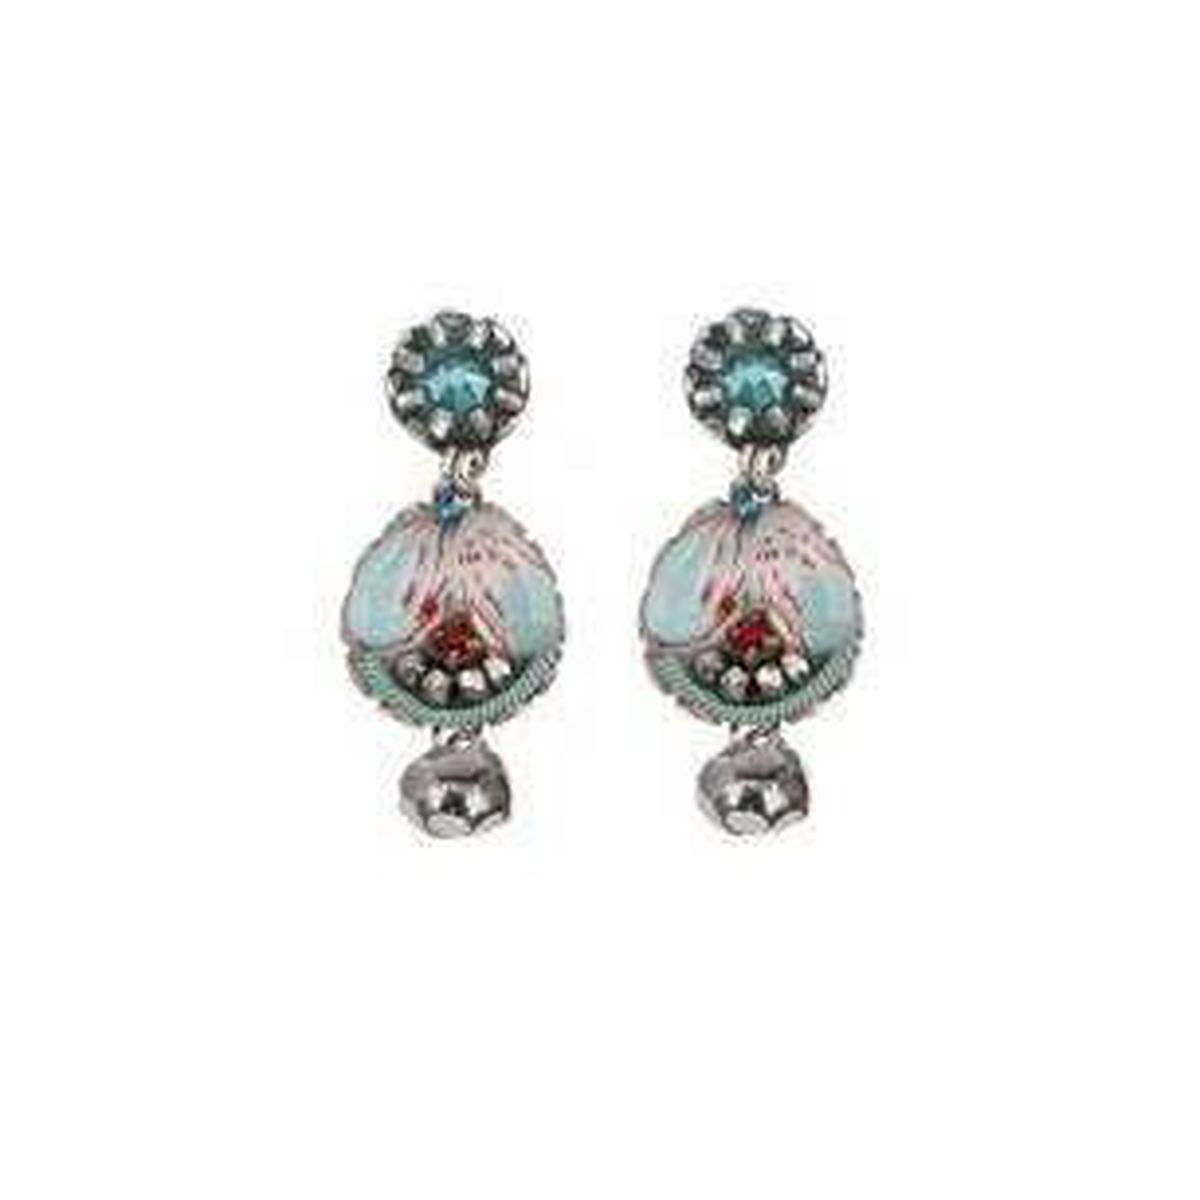 DELIGHT CLASSIC, TAPESTRY EARRINGS Greenwater AyalaBar